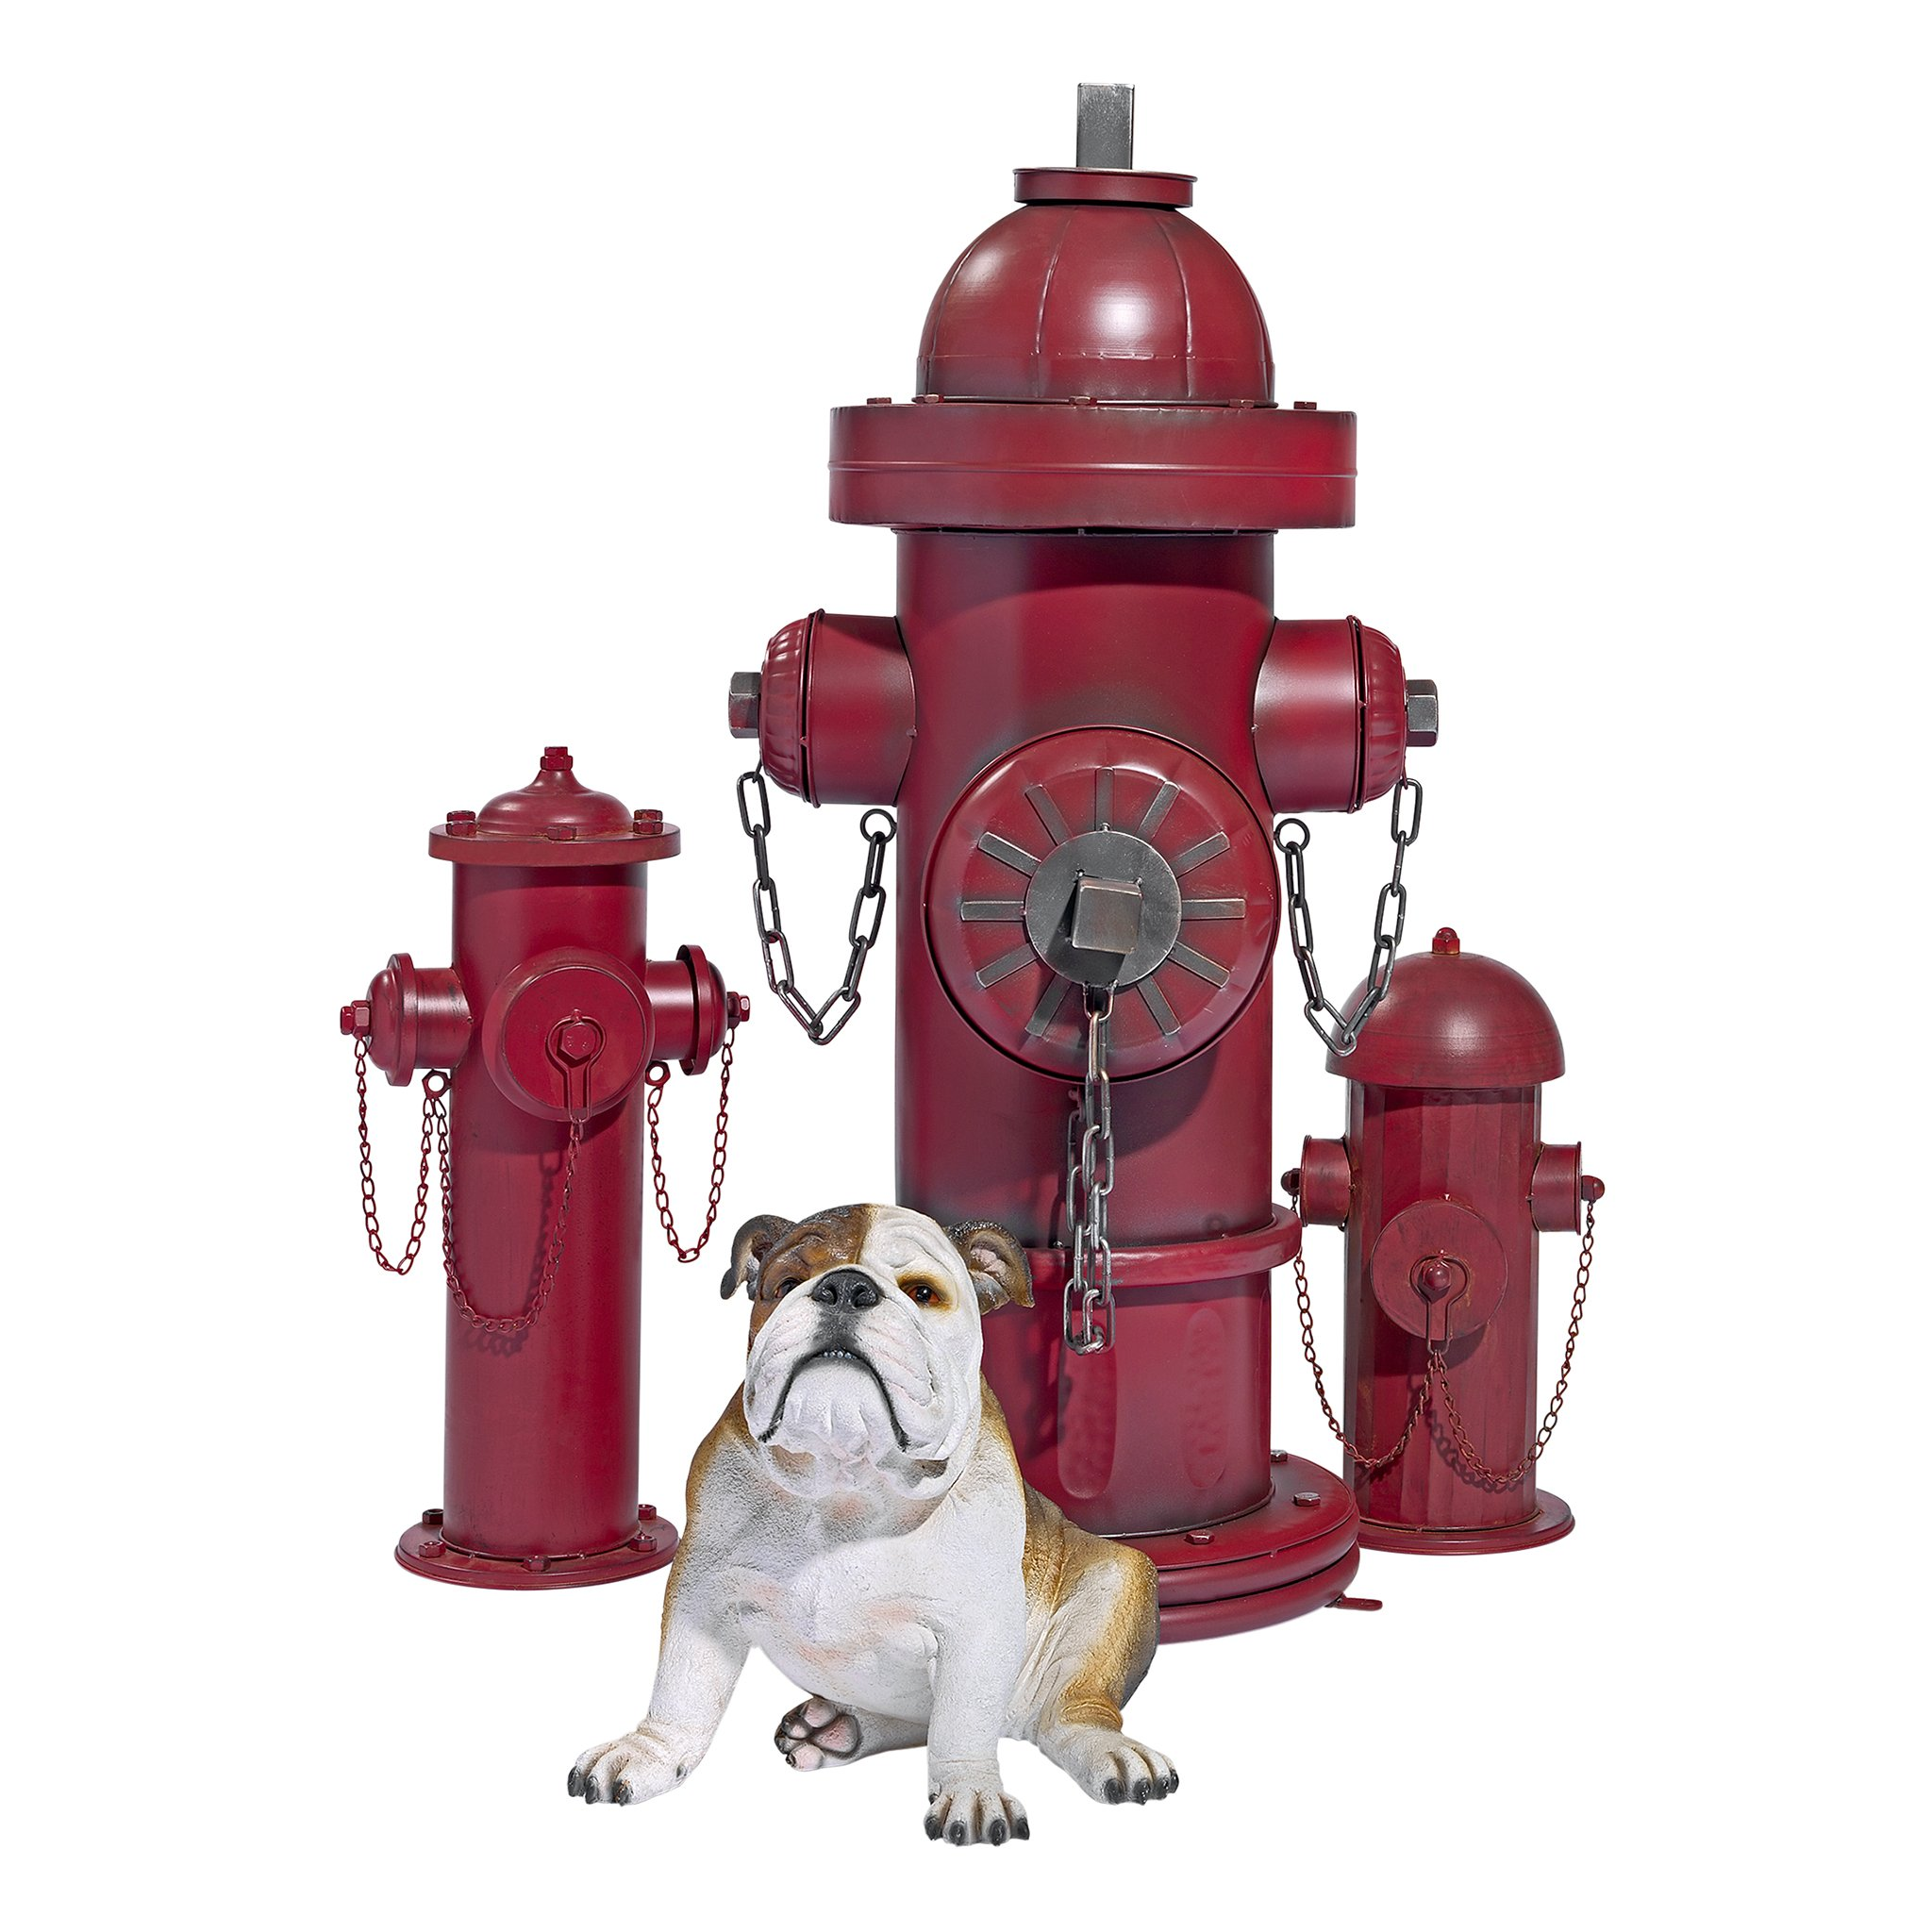 Design Toscano Fire Hydrant Statue Puppy Pee Post and Pet Storage Container, Medium 18 Inch, Metalware, Full Color by Design Toscano (Image #6)